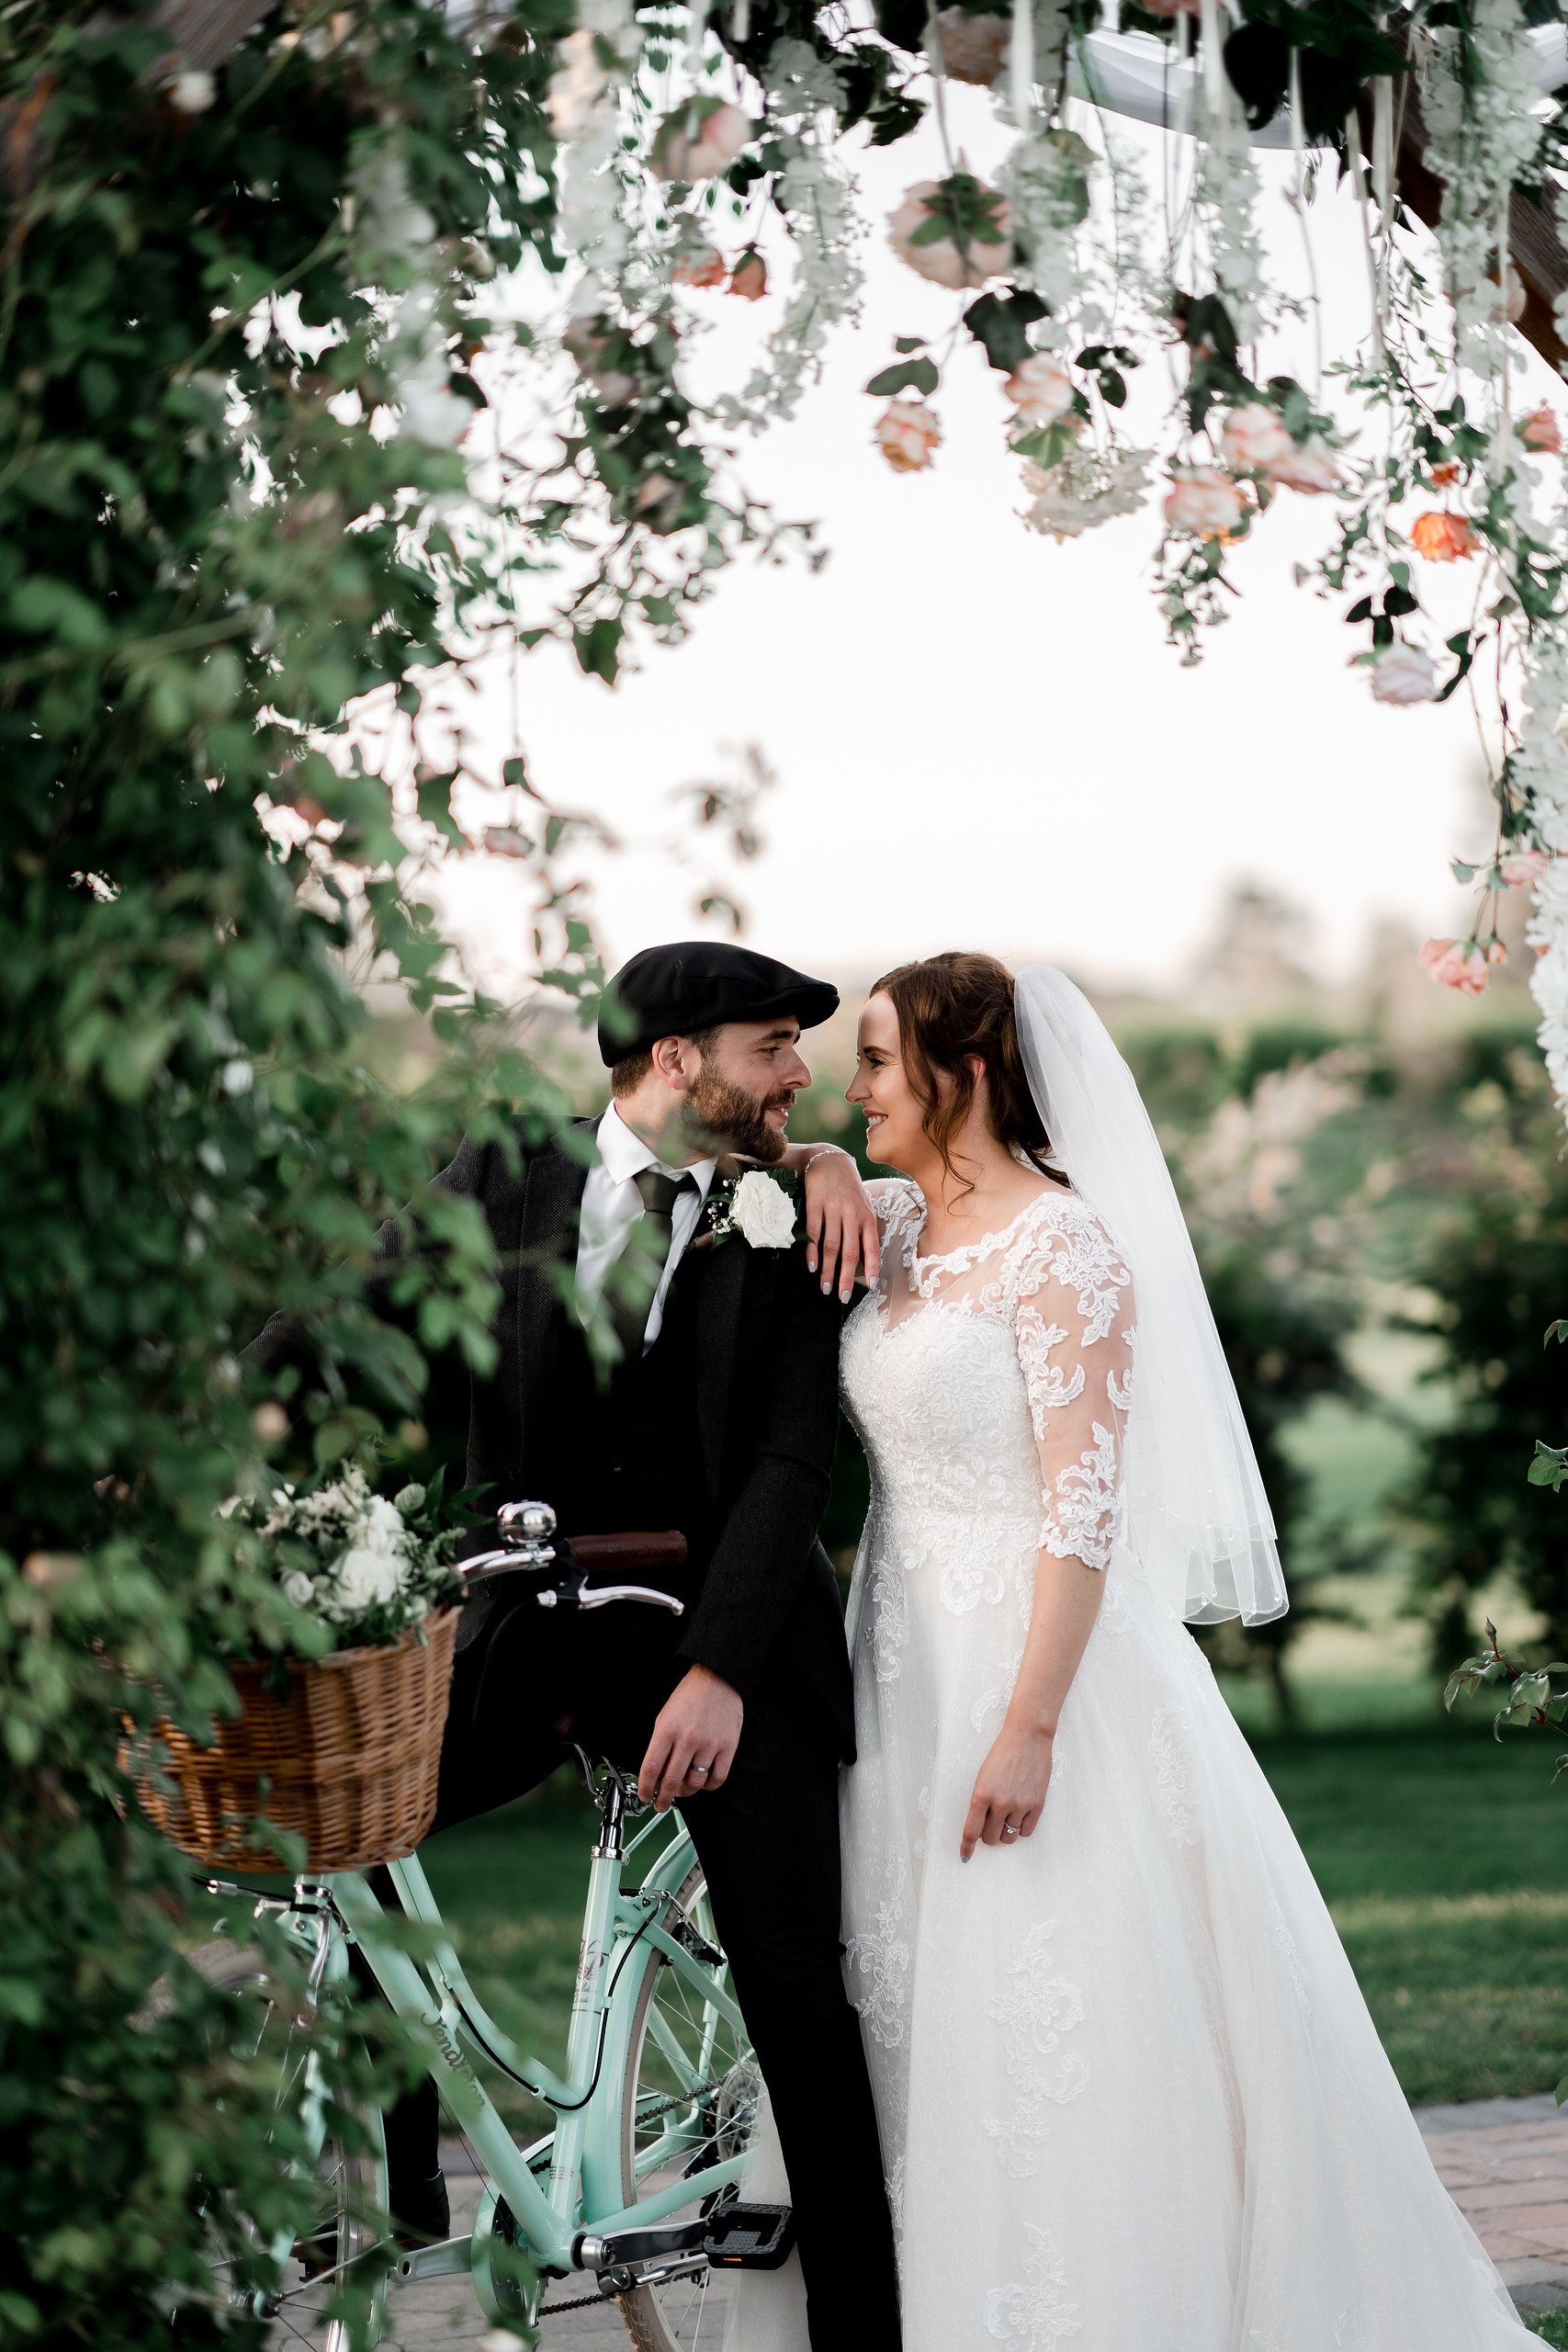 Bride and groom look into each others eyes, groom on a traditional bike and greenery all around